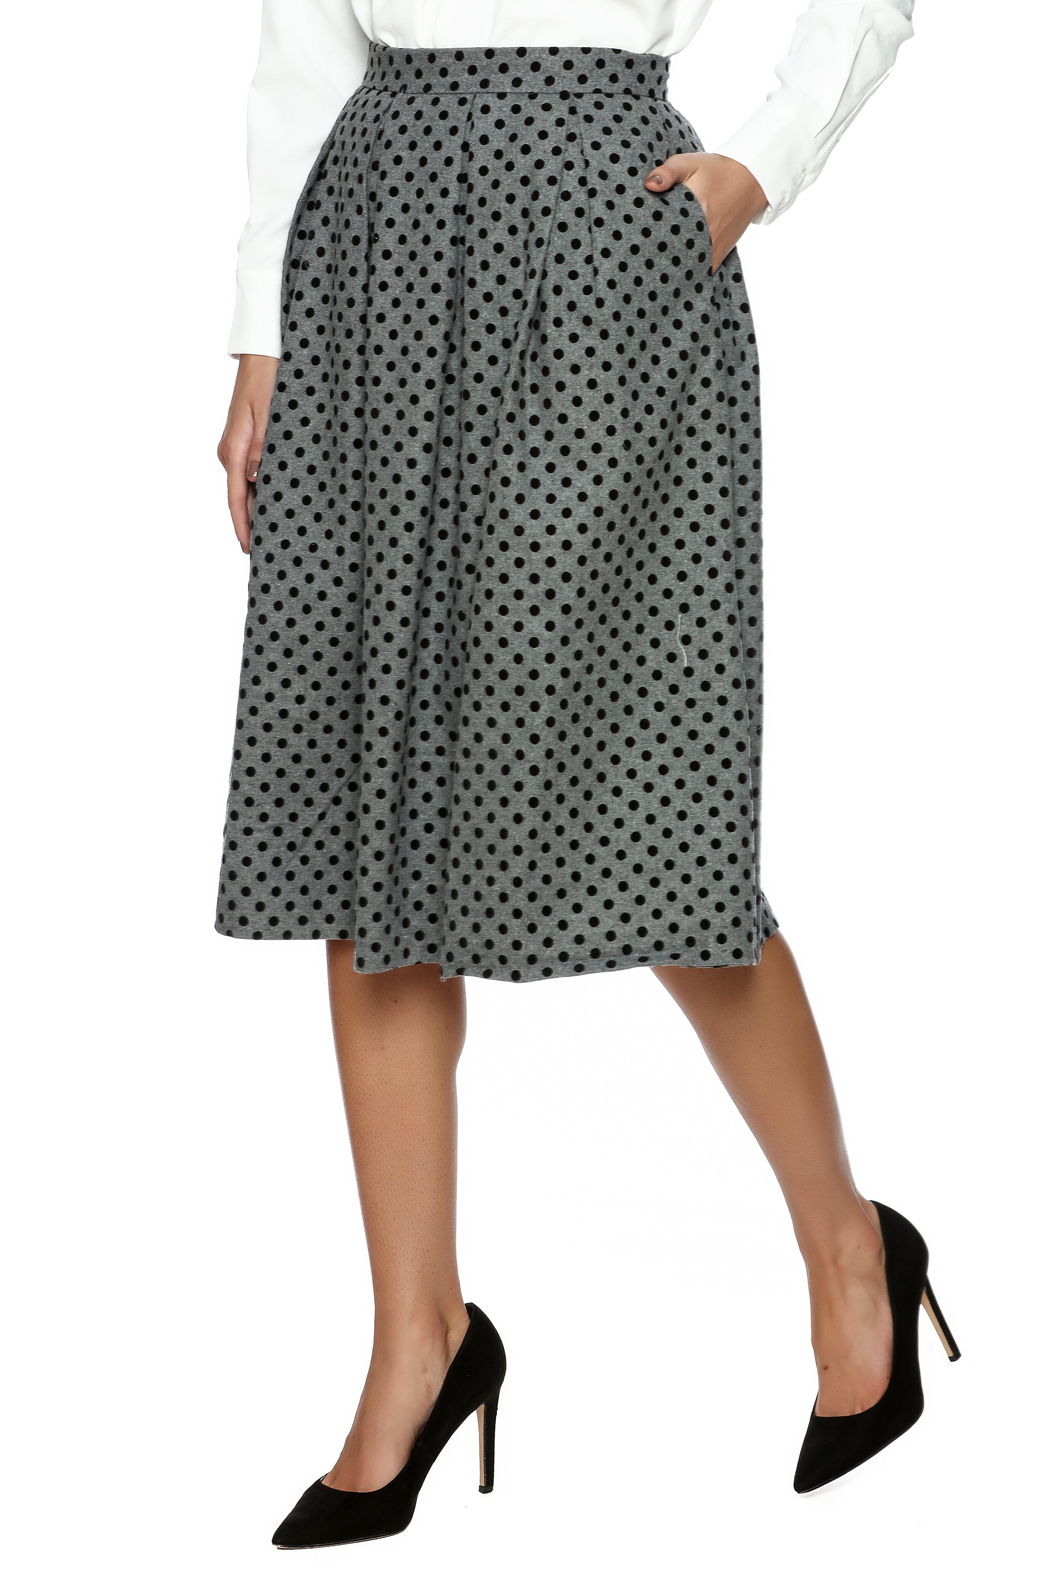 FRNCH Polka Dot Pleat Skirt - Front Cropped Image